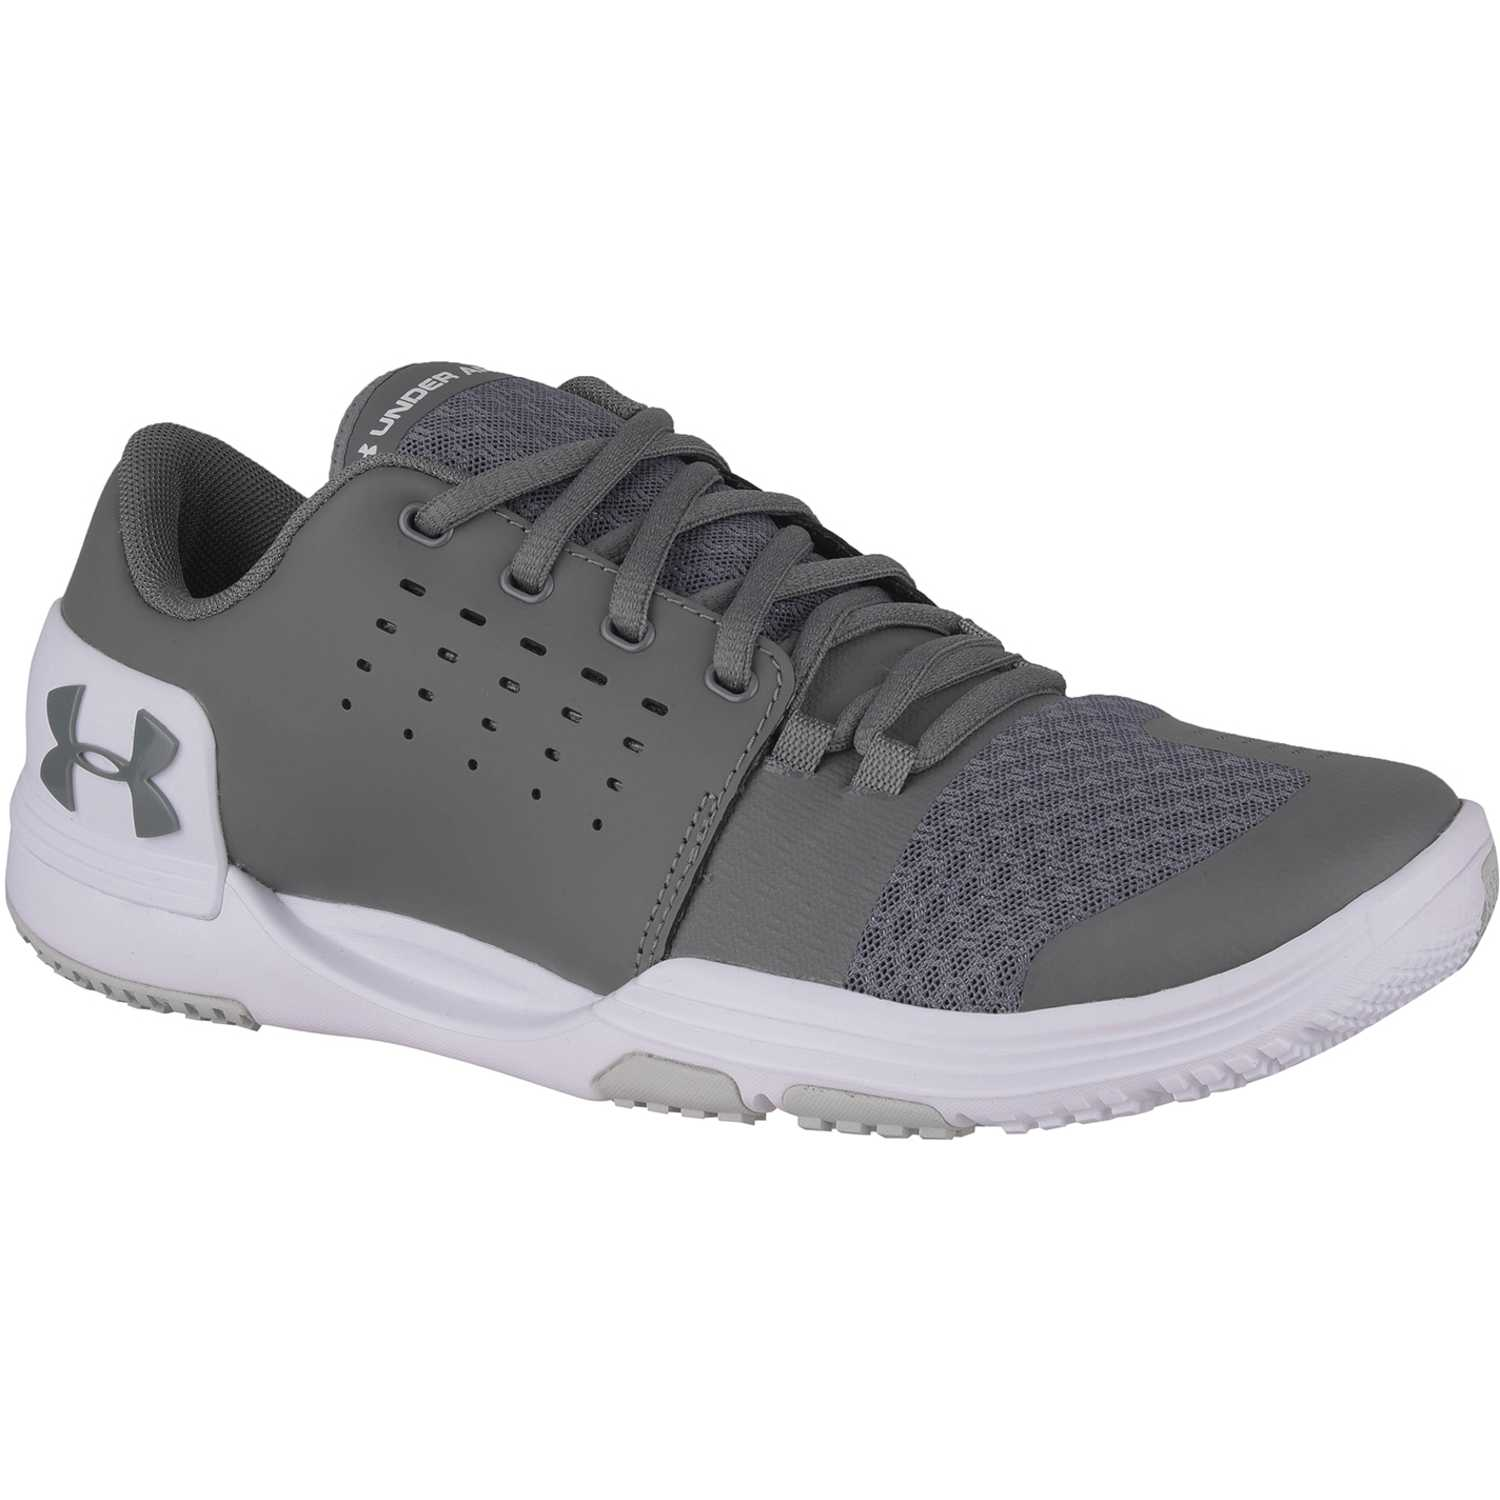 Under Armour ua limitless tr 3.0 Gris / blanco Hombres